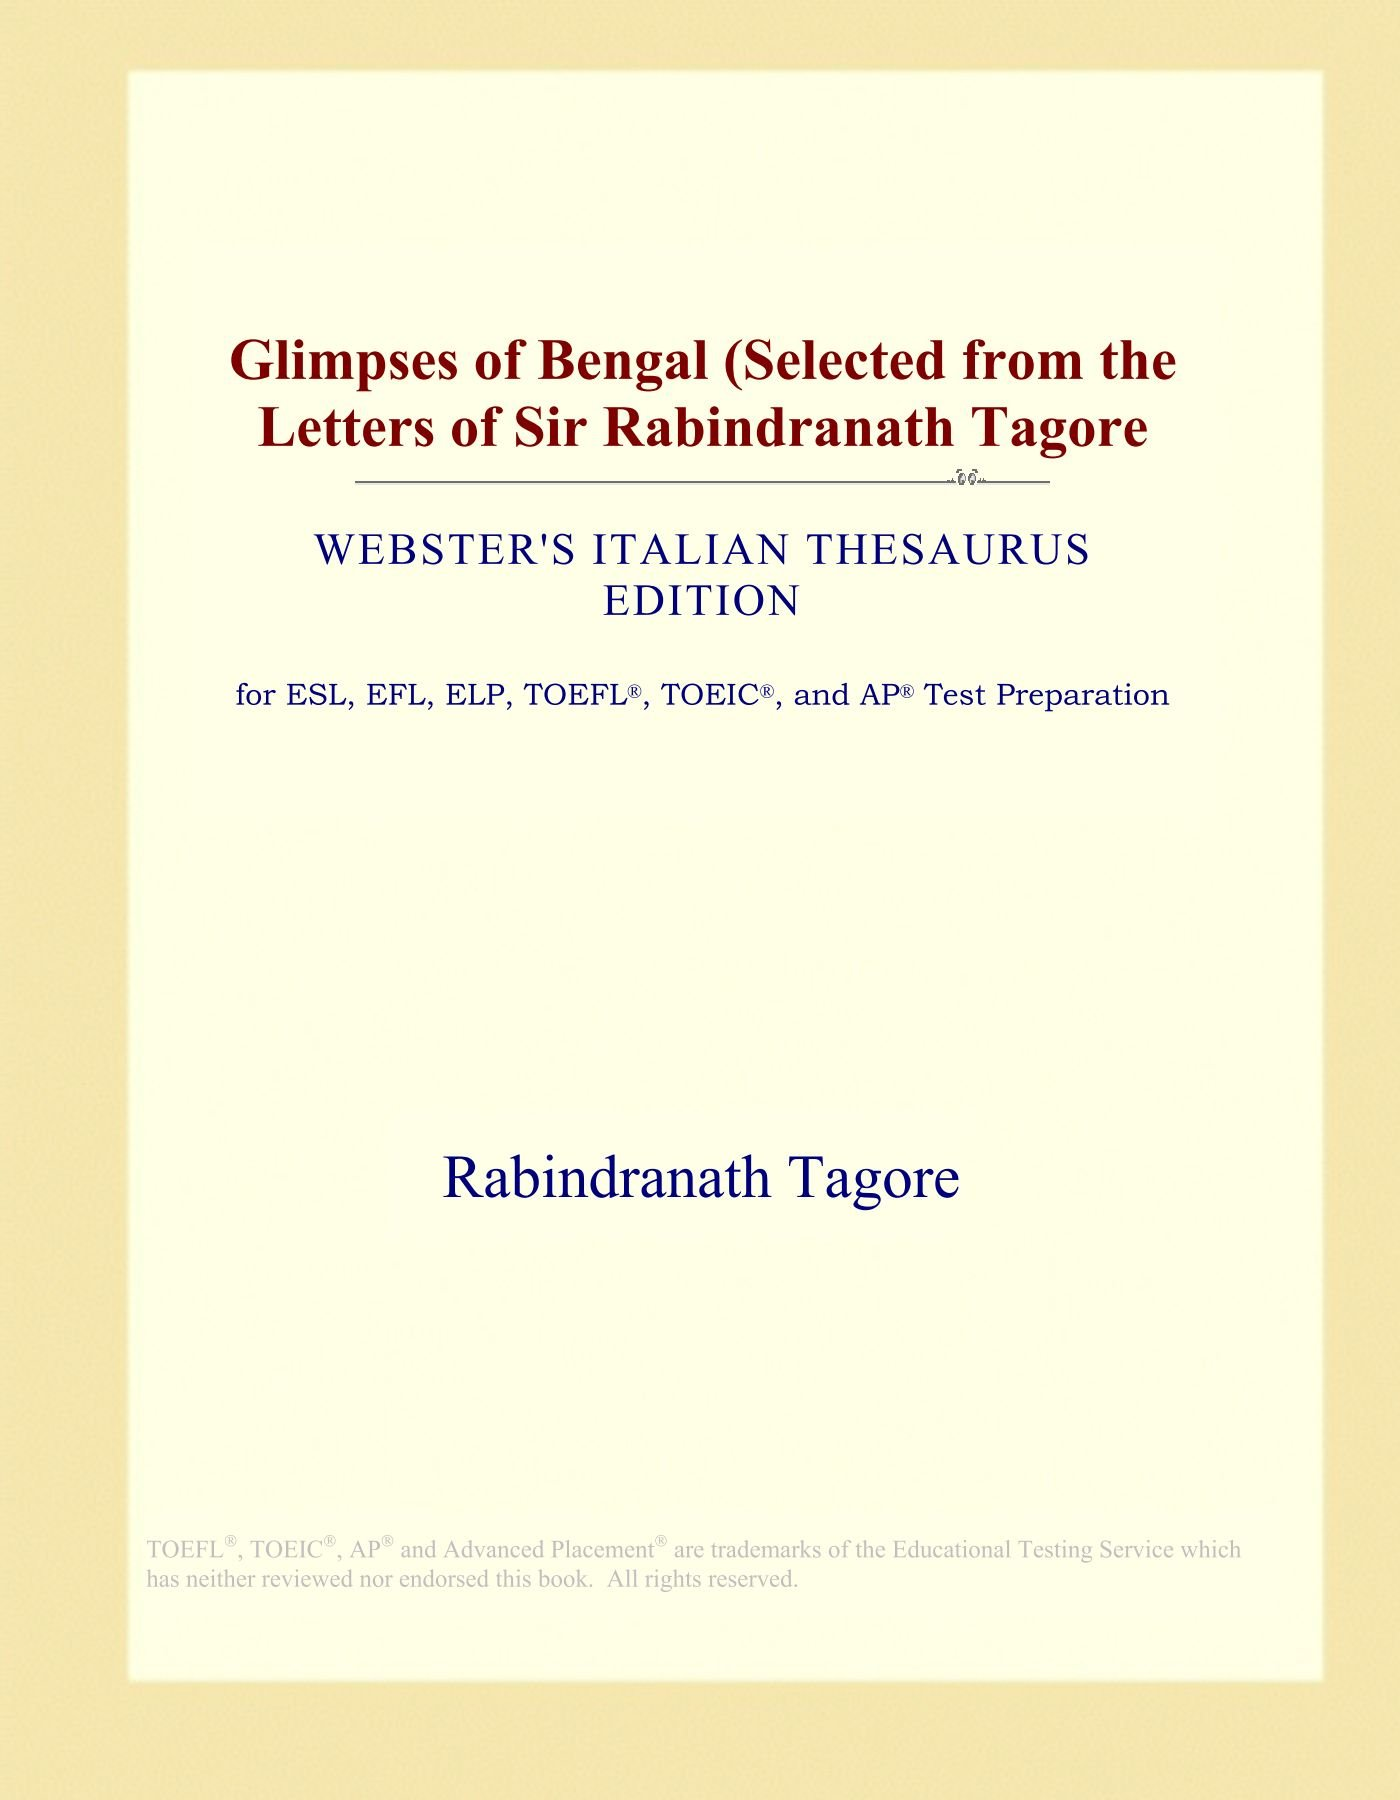 Glimpses of Bengal Selected from the letters of Sir Rabindranath Tagore 1921